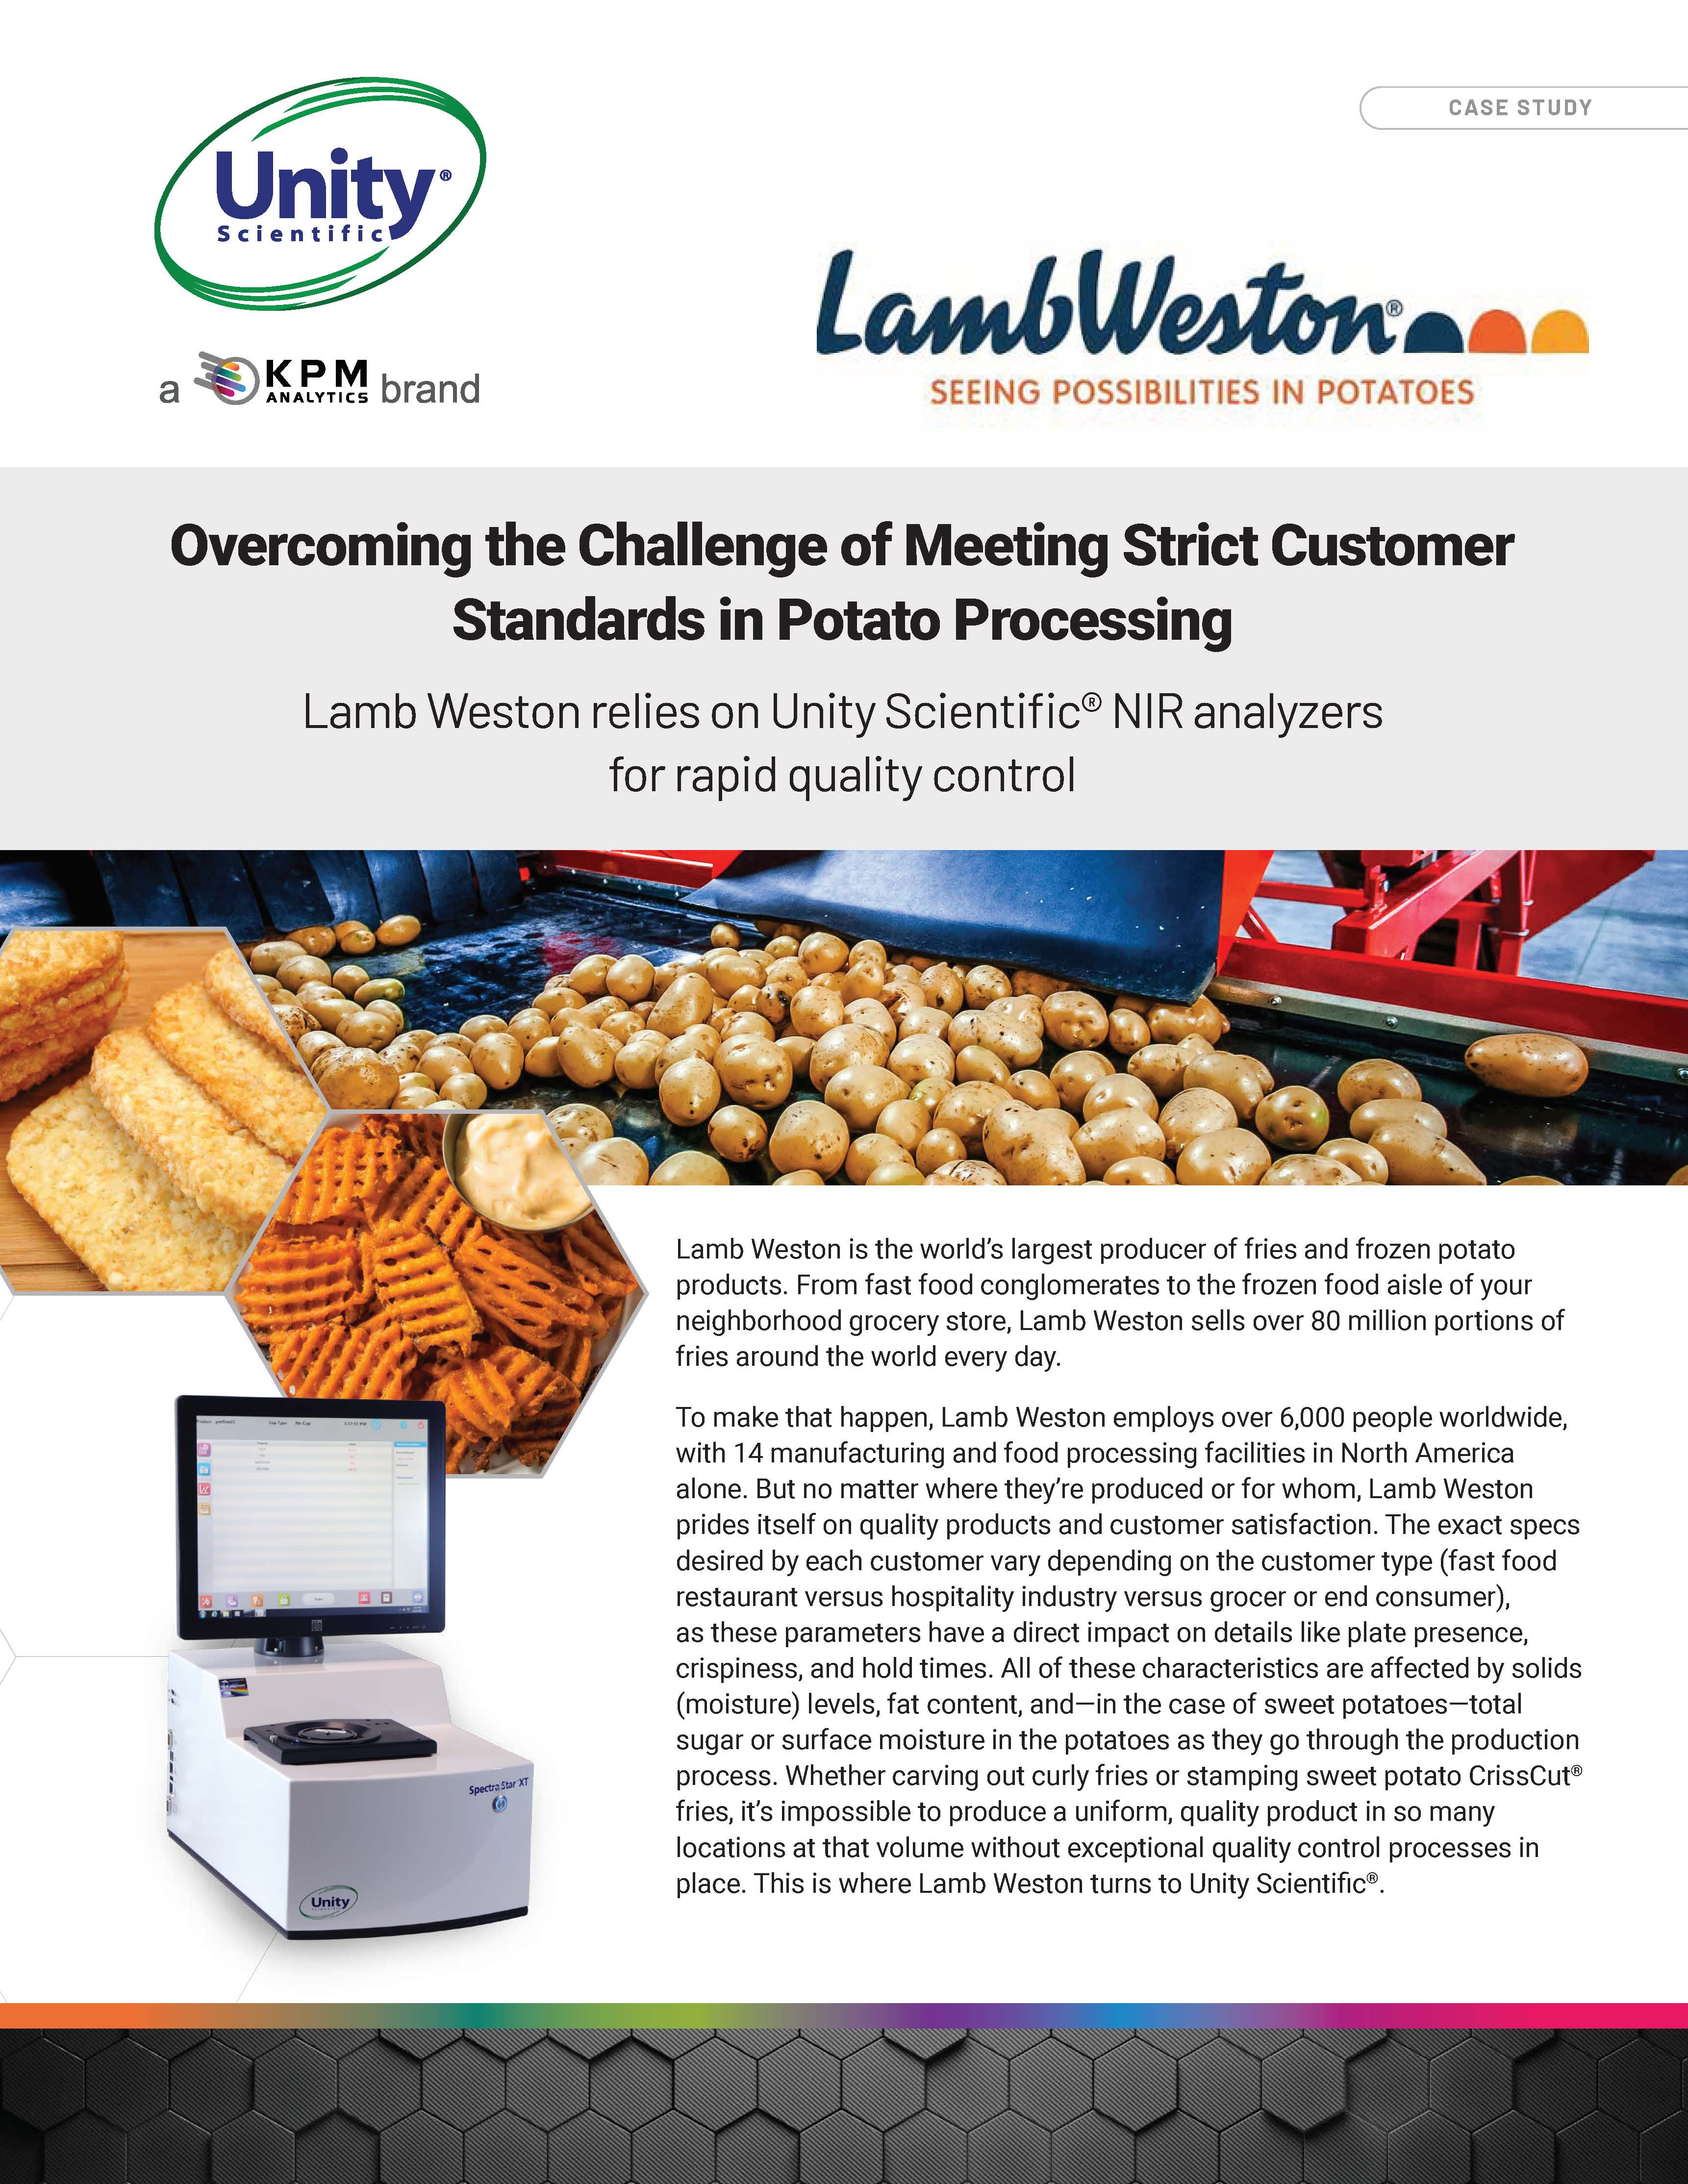 Overcoming the Challenge of Meeting Strict Customer Standards in Potato Processing